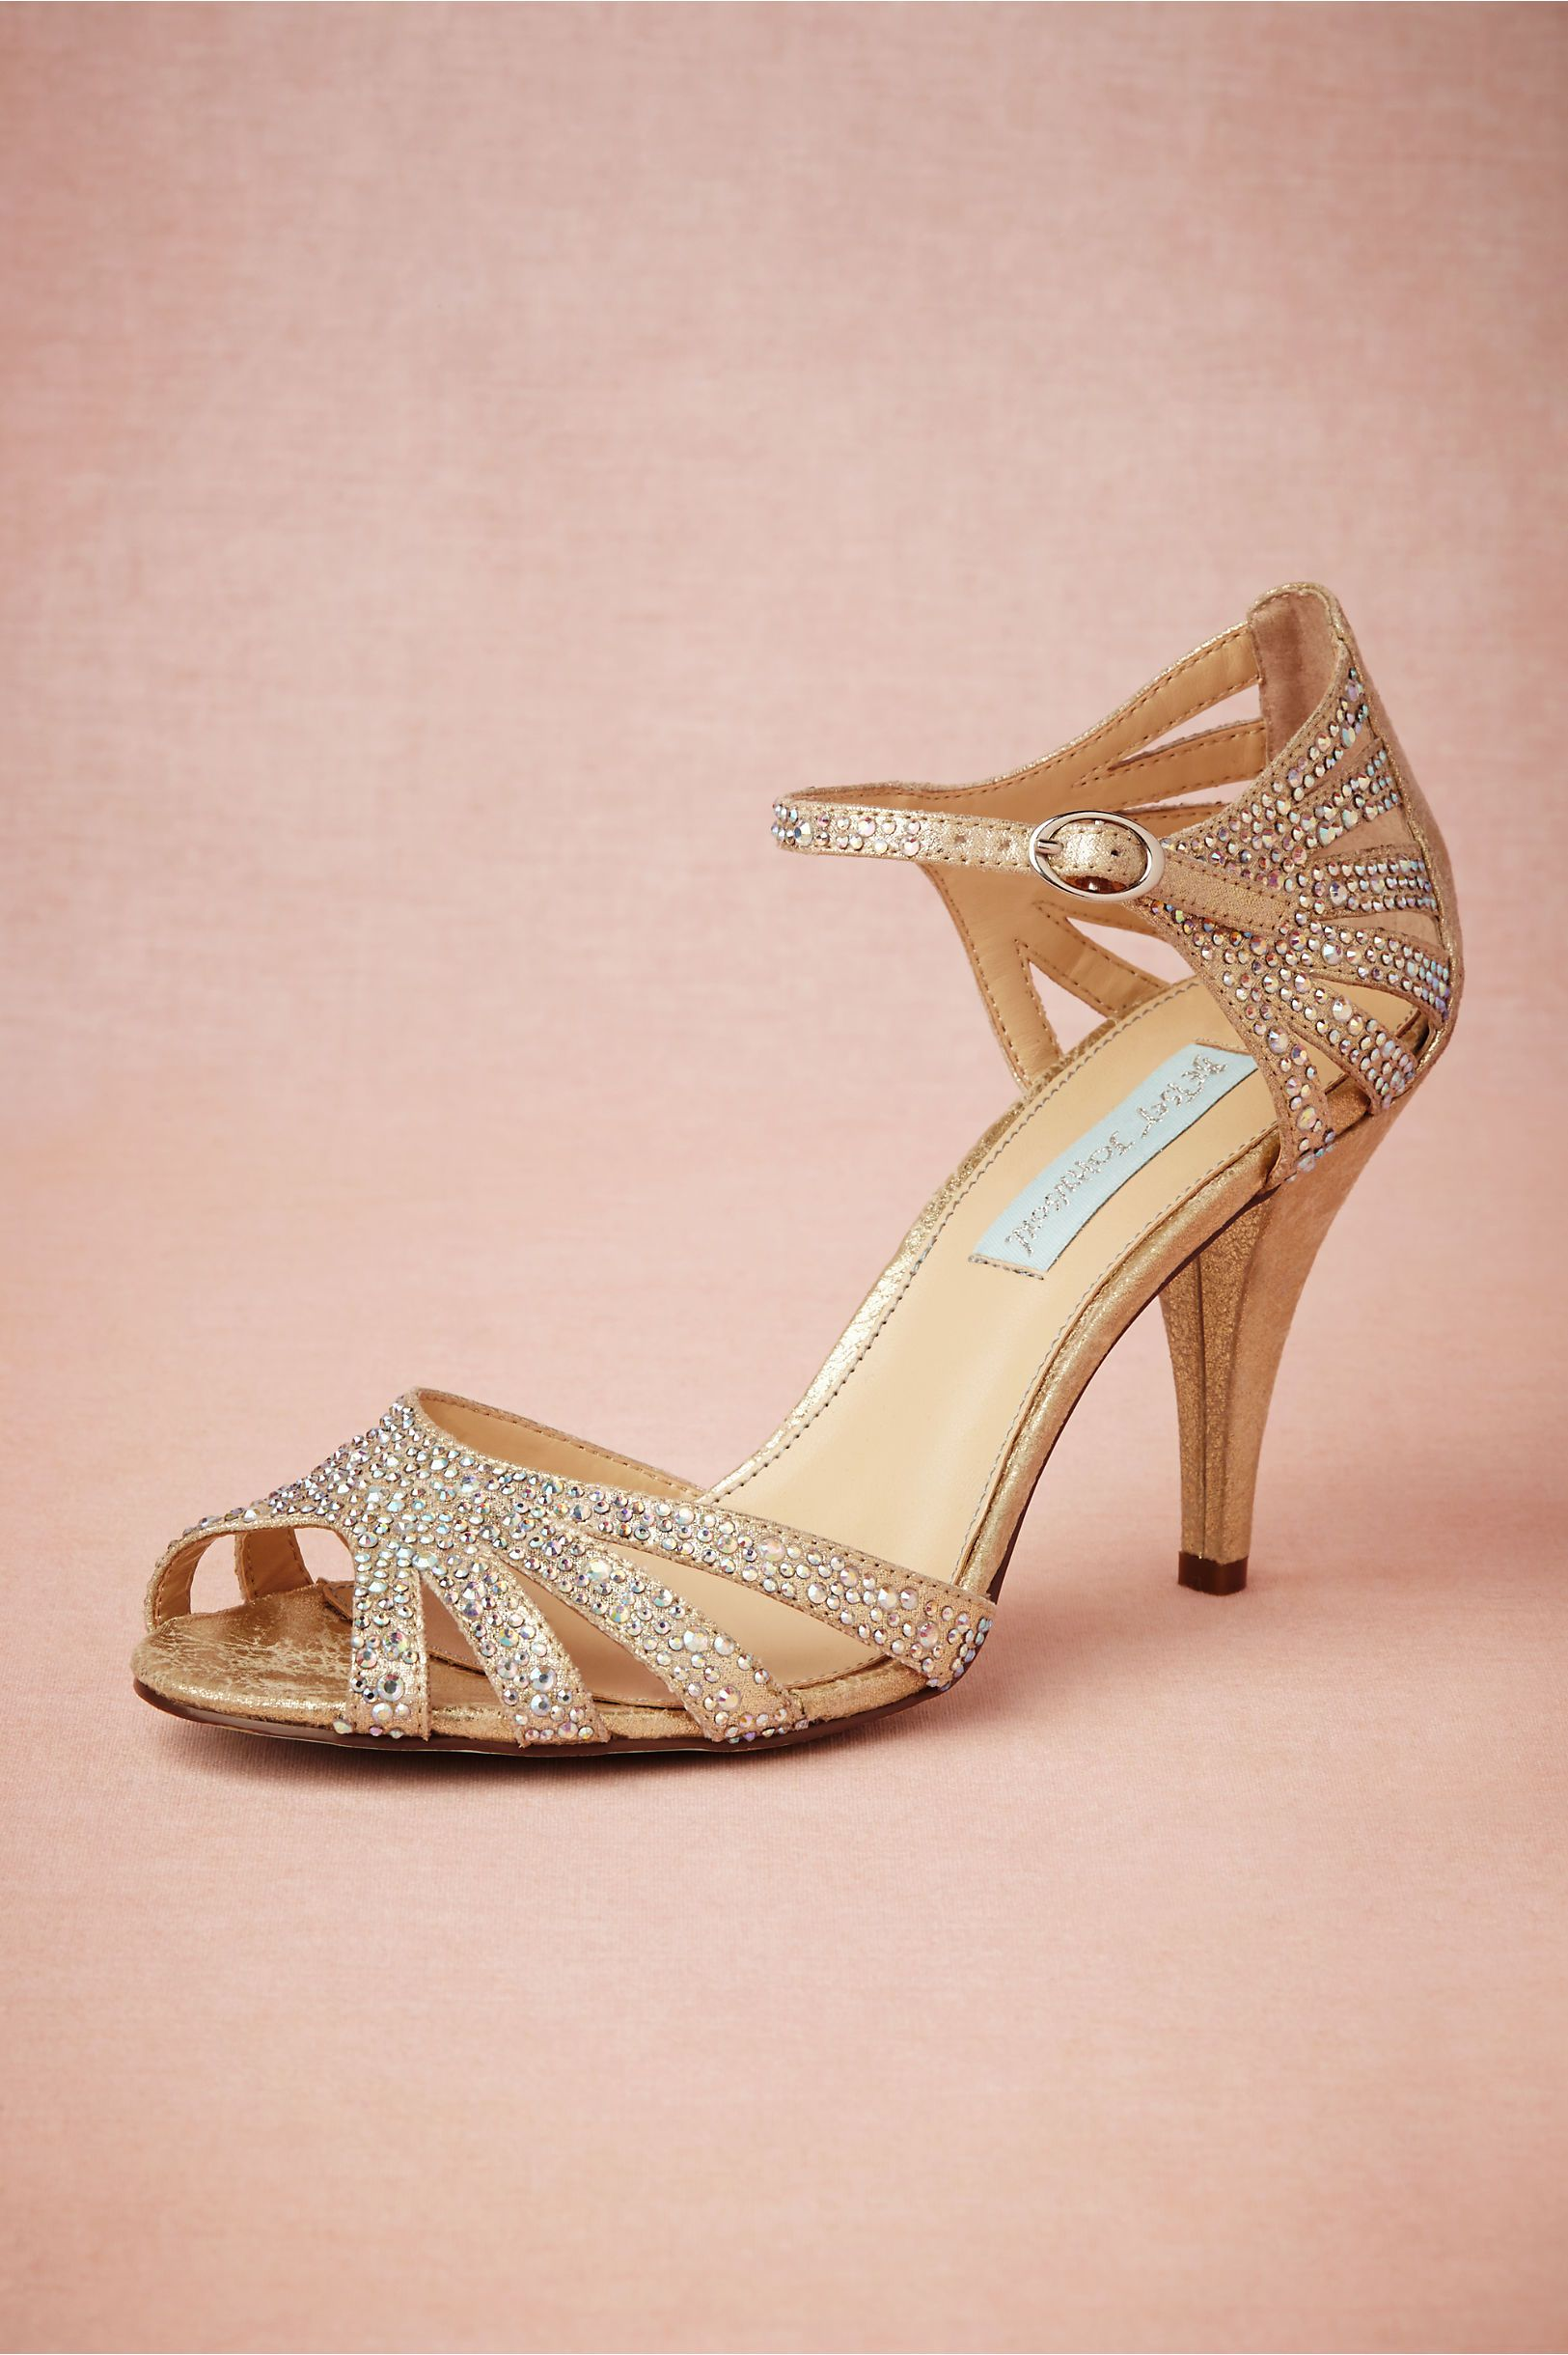 Champagne Sparkle Heels in Shoes & Accessories Shoes at